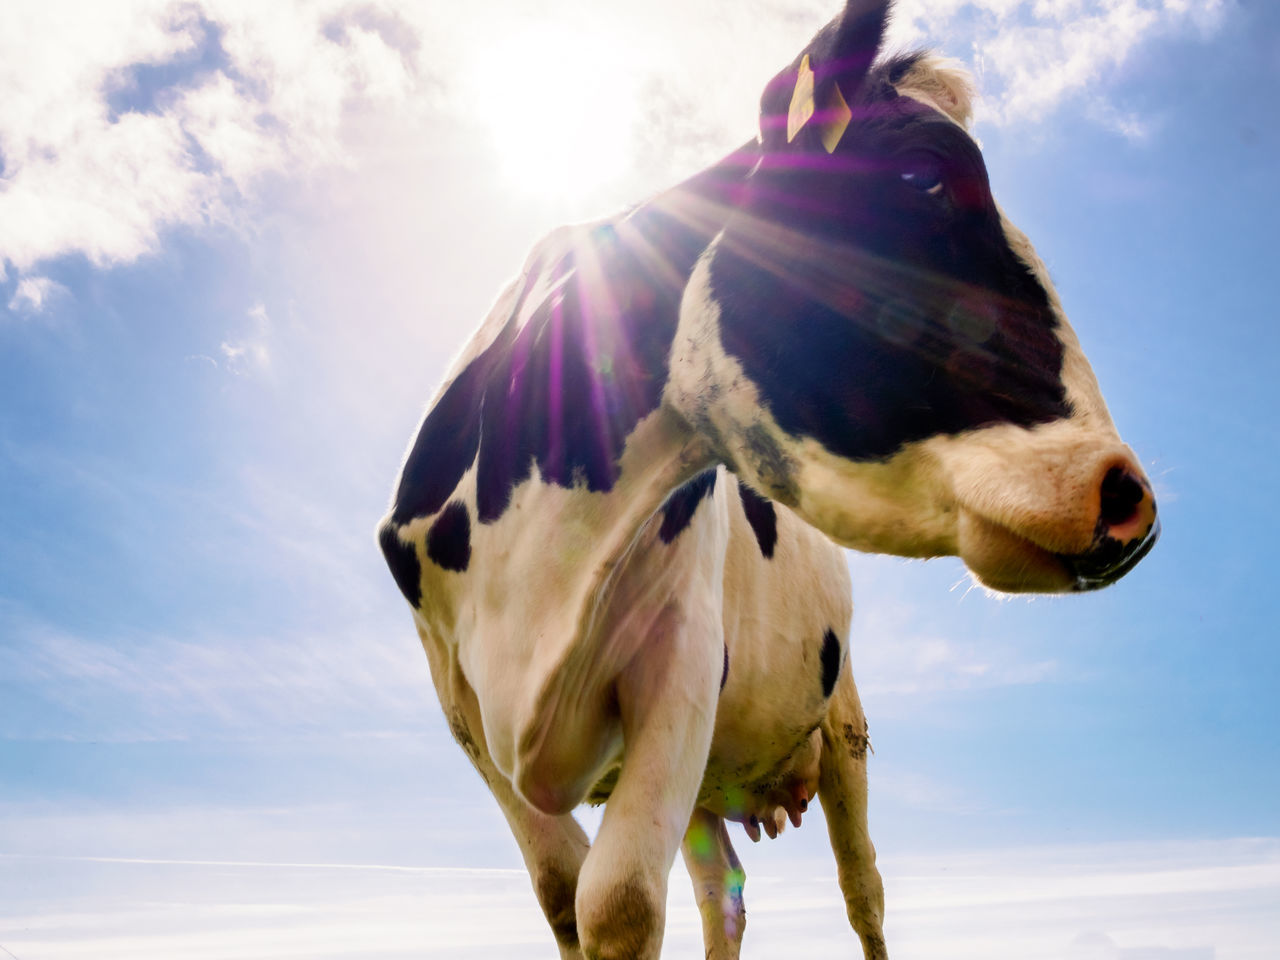 Black & White Beauty 🐮 Agriculture Animal Themes Black & White Bovine Close-up Cloud - Sky Cow Day Domestic Animals Low Angle View Nature No People One Animal Outdoors Sky Sunburst